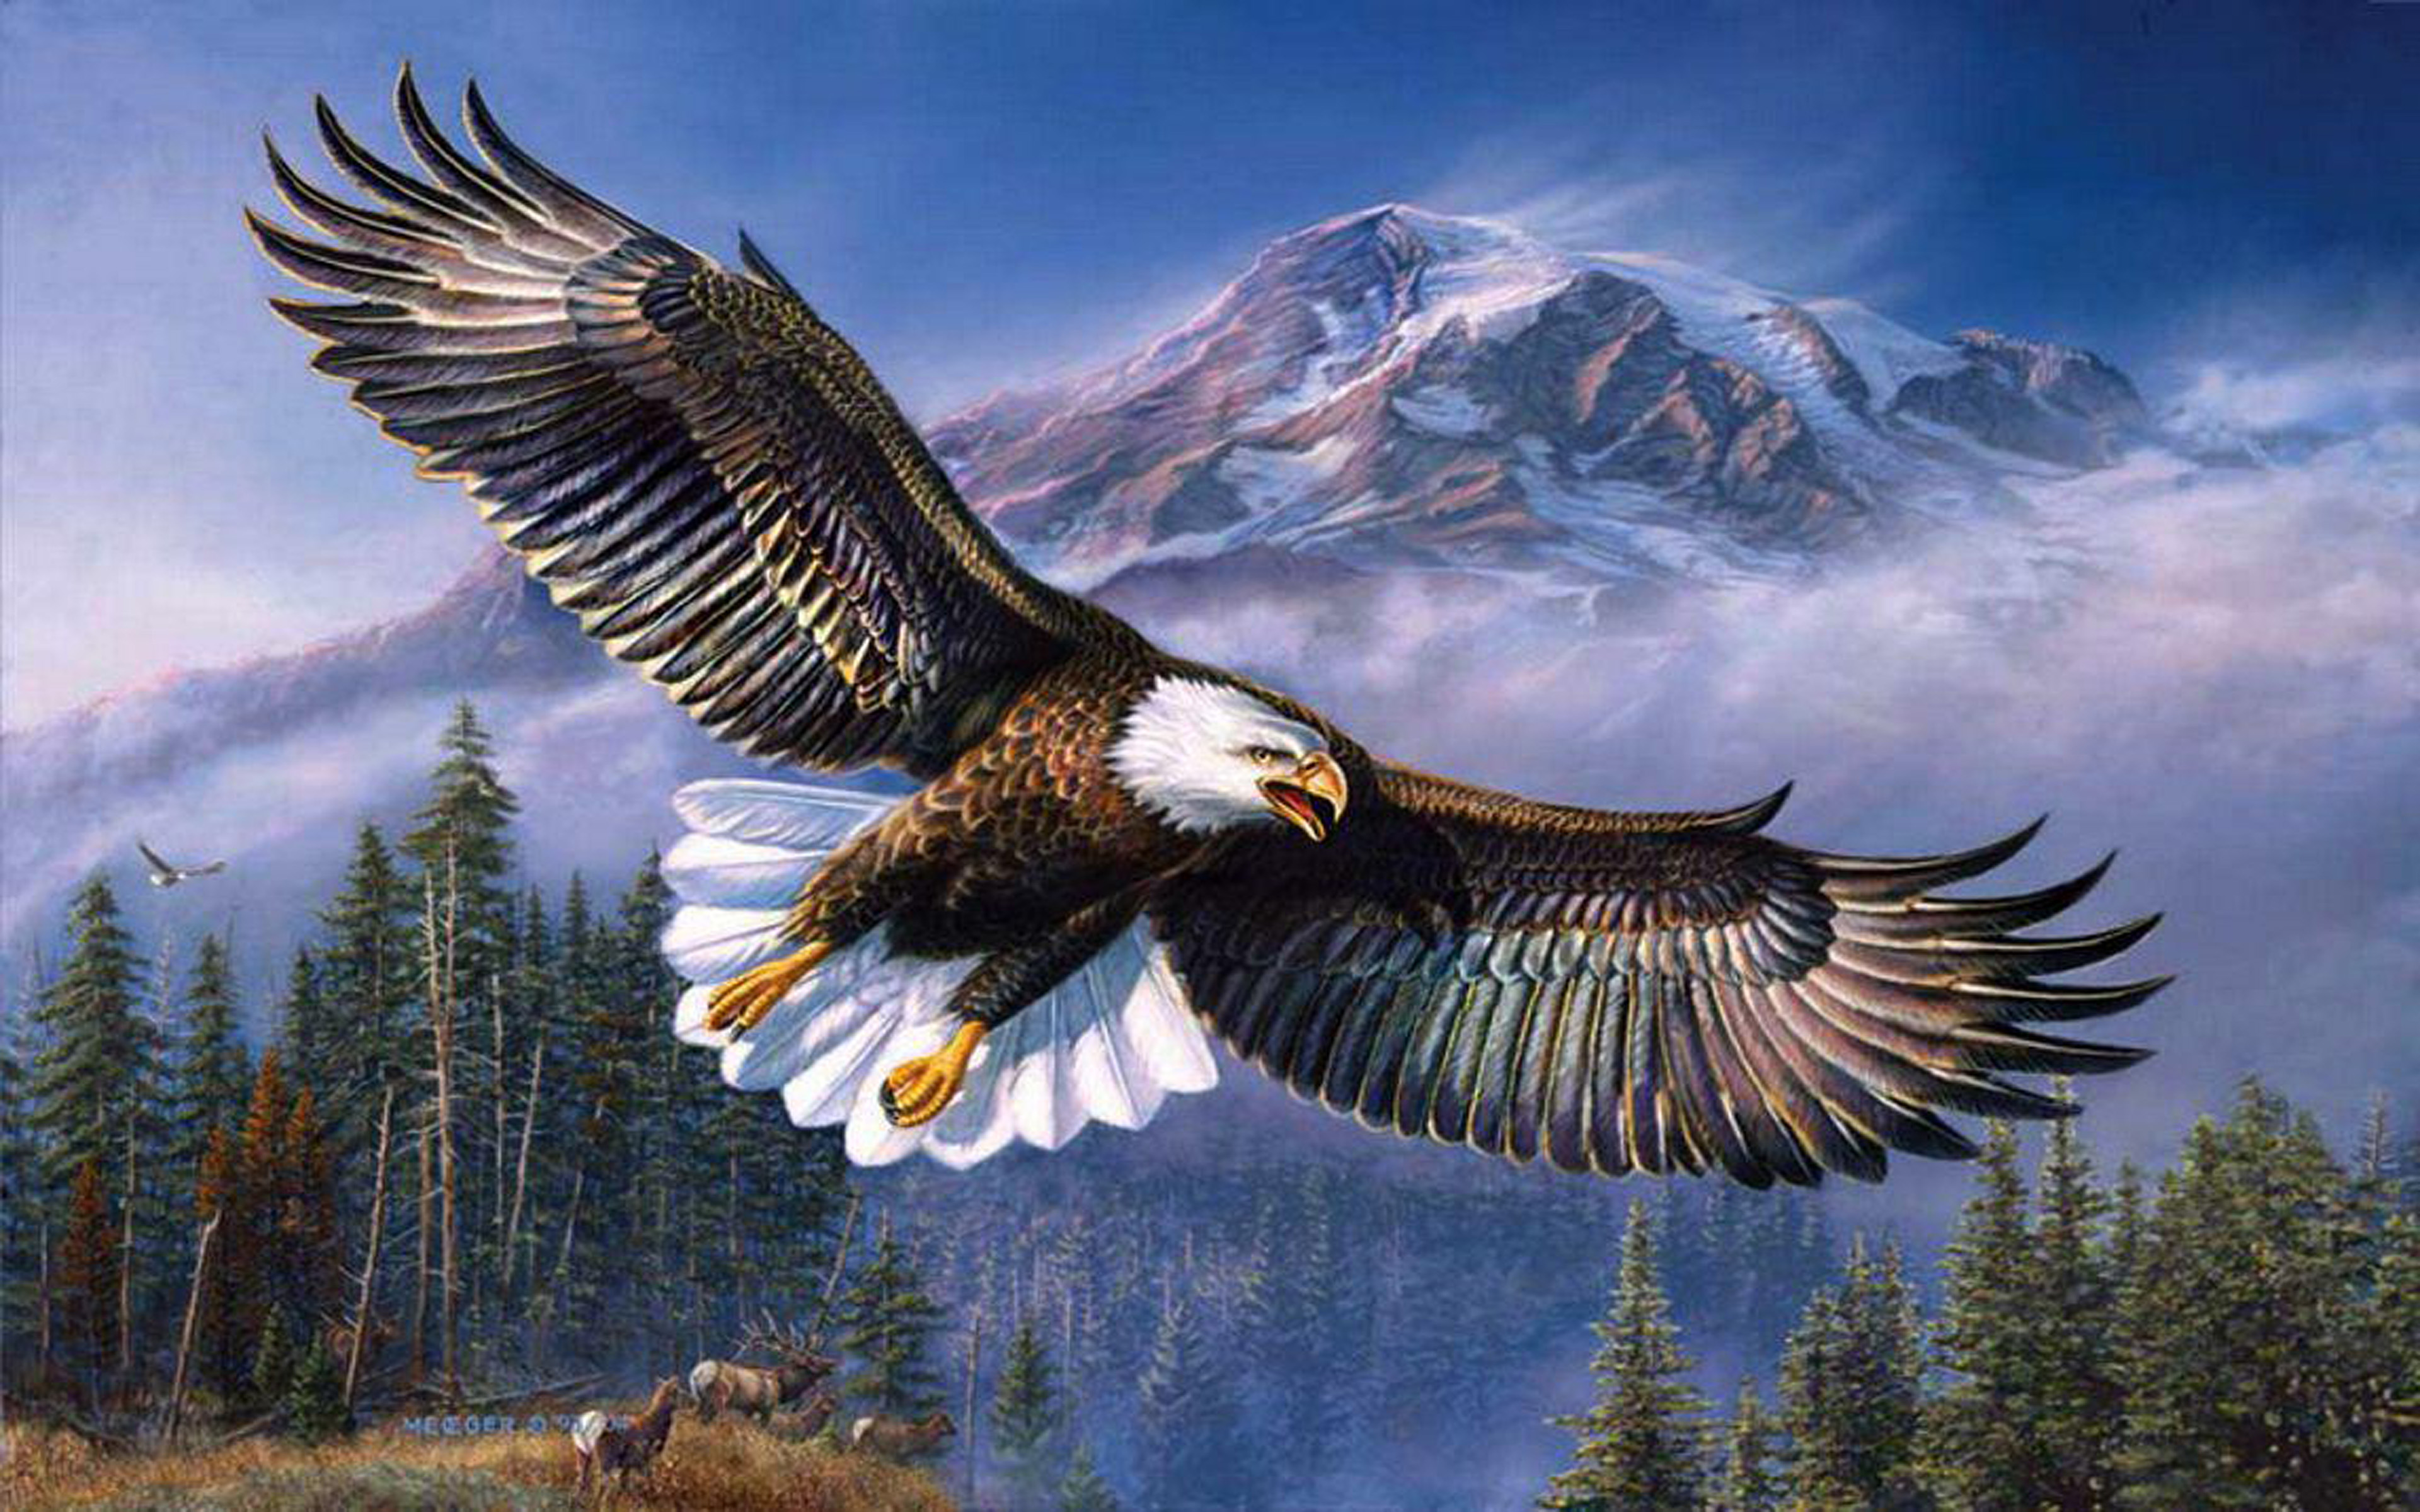 Native American Wallpaper Iphone Beautiful Background Bald Eagle In Flight Wings Spread Hd